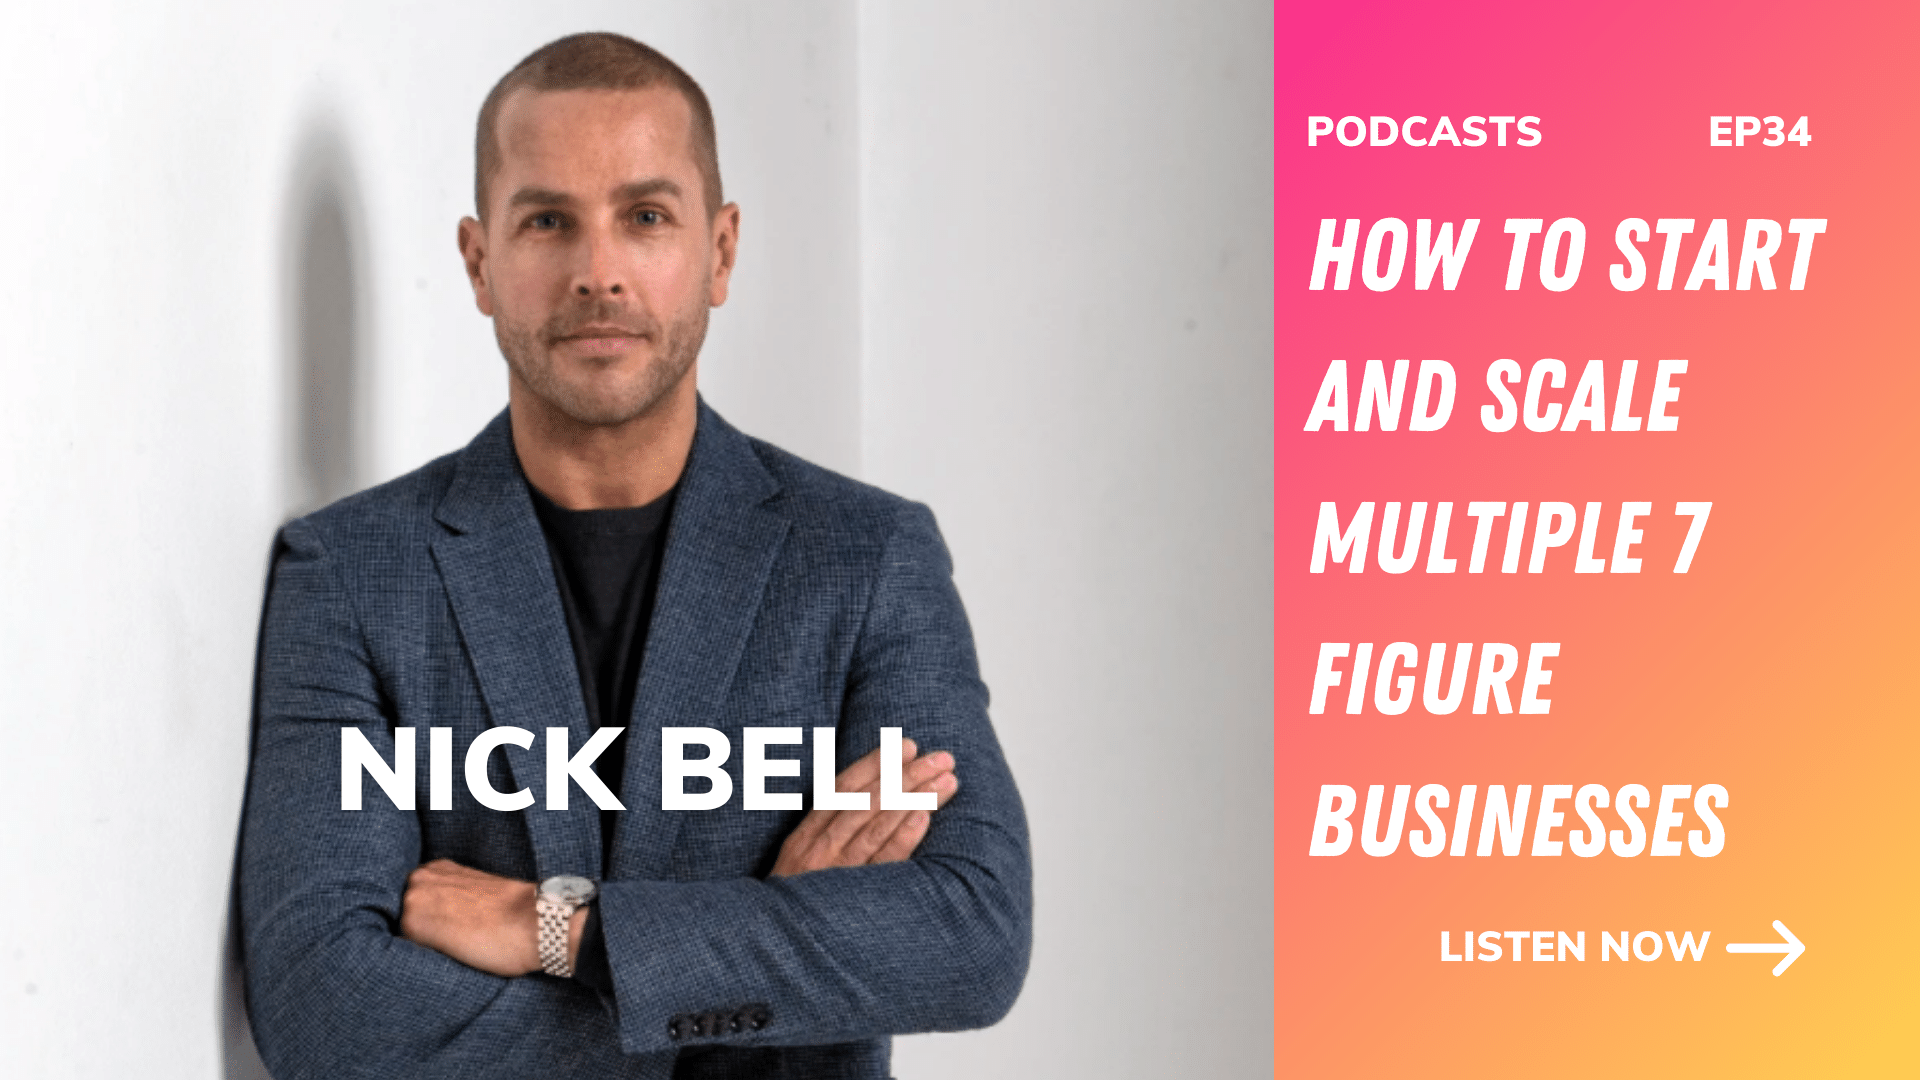 Nick Bell How to start and scale multiple 7 figure businesses